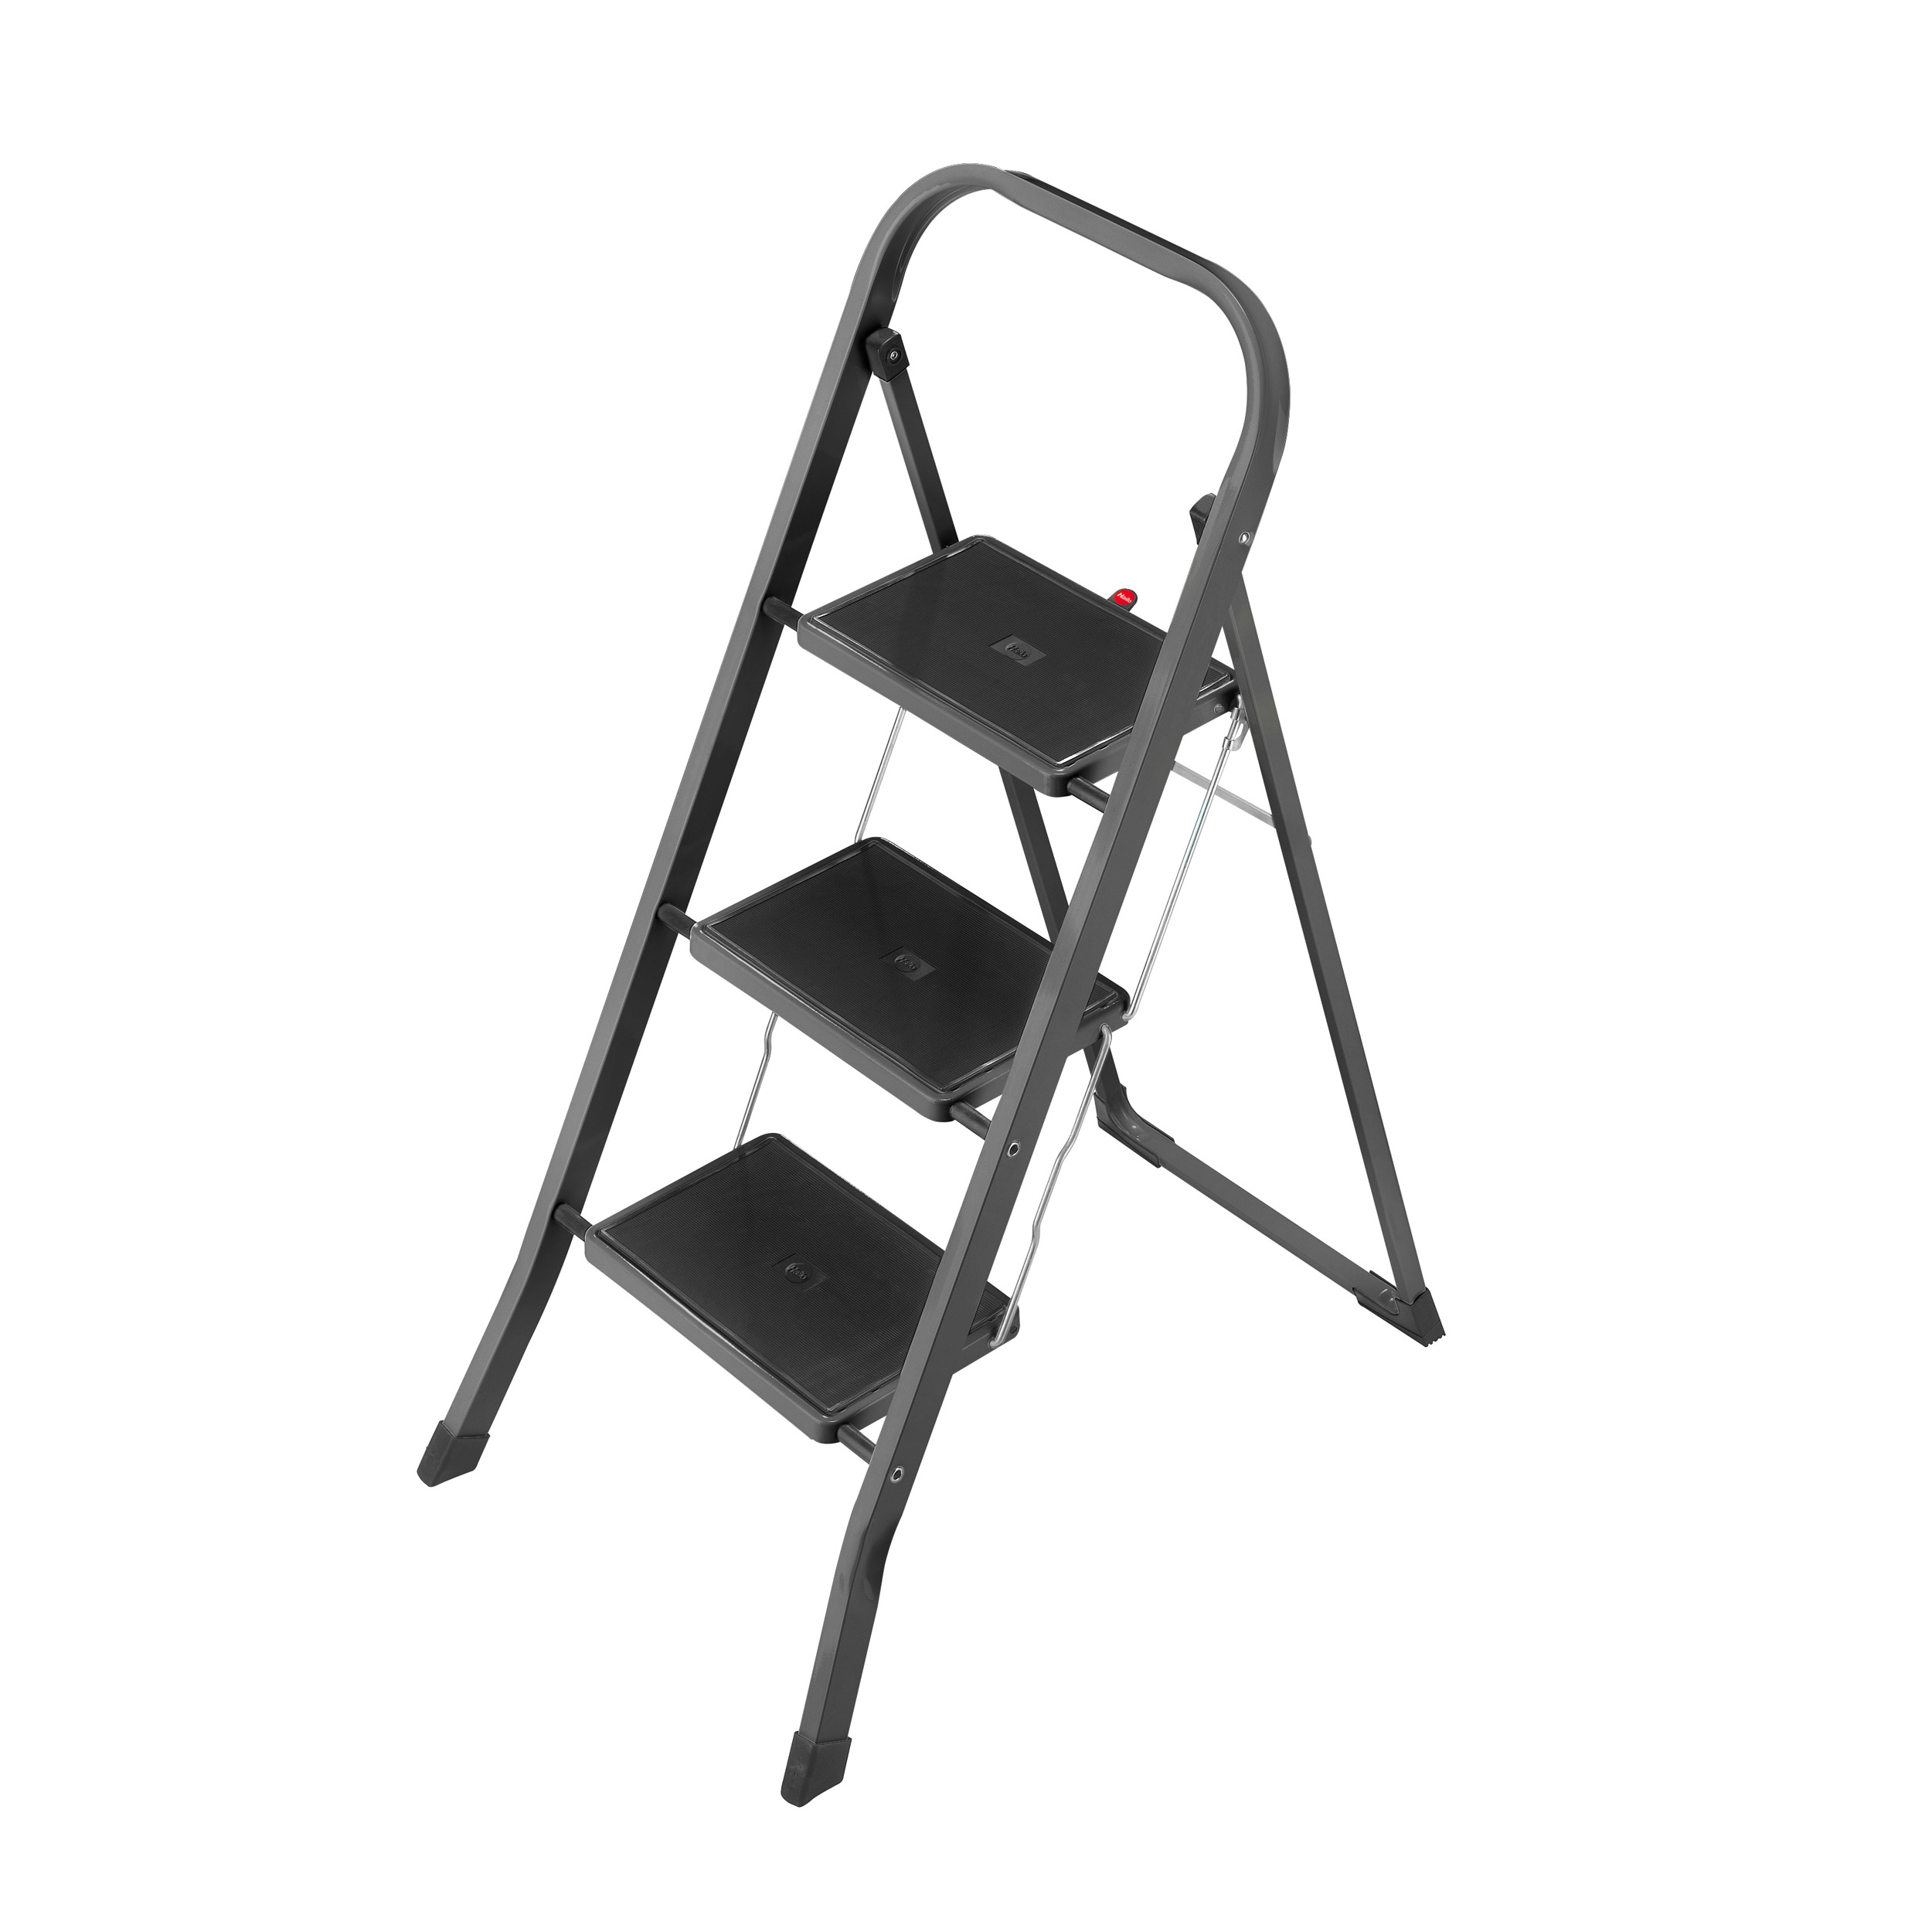 Wondrous Hailo K20 3 Steel Steps Folding Step Step Stool Step Ladder Folding Ladder Grey 4397971 At About Tea De Shop Ibusinesslaw Wood Chair Design Ideas Ibusinesslaworg